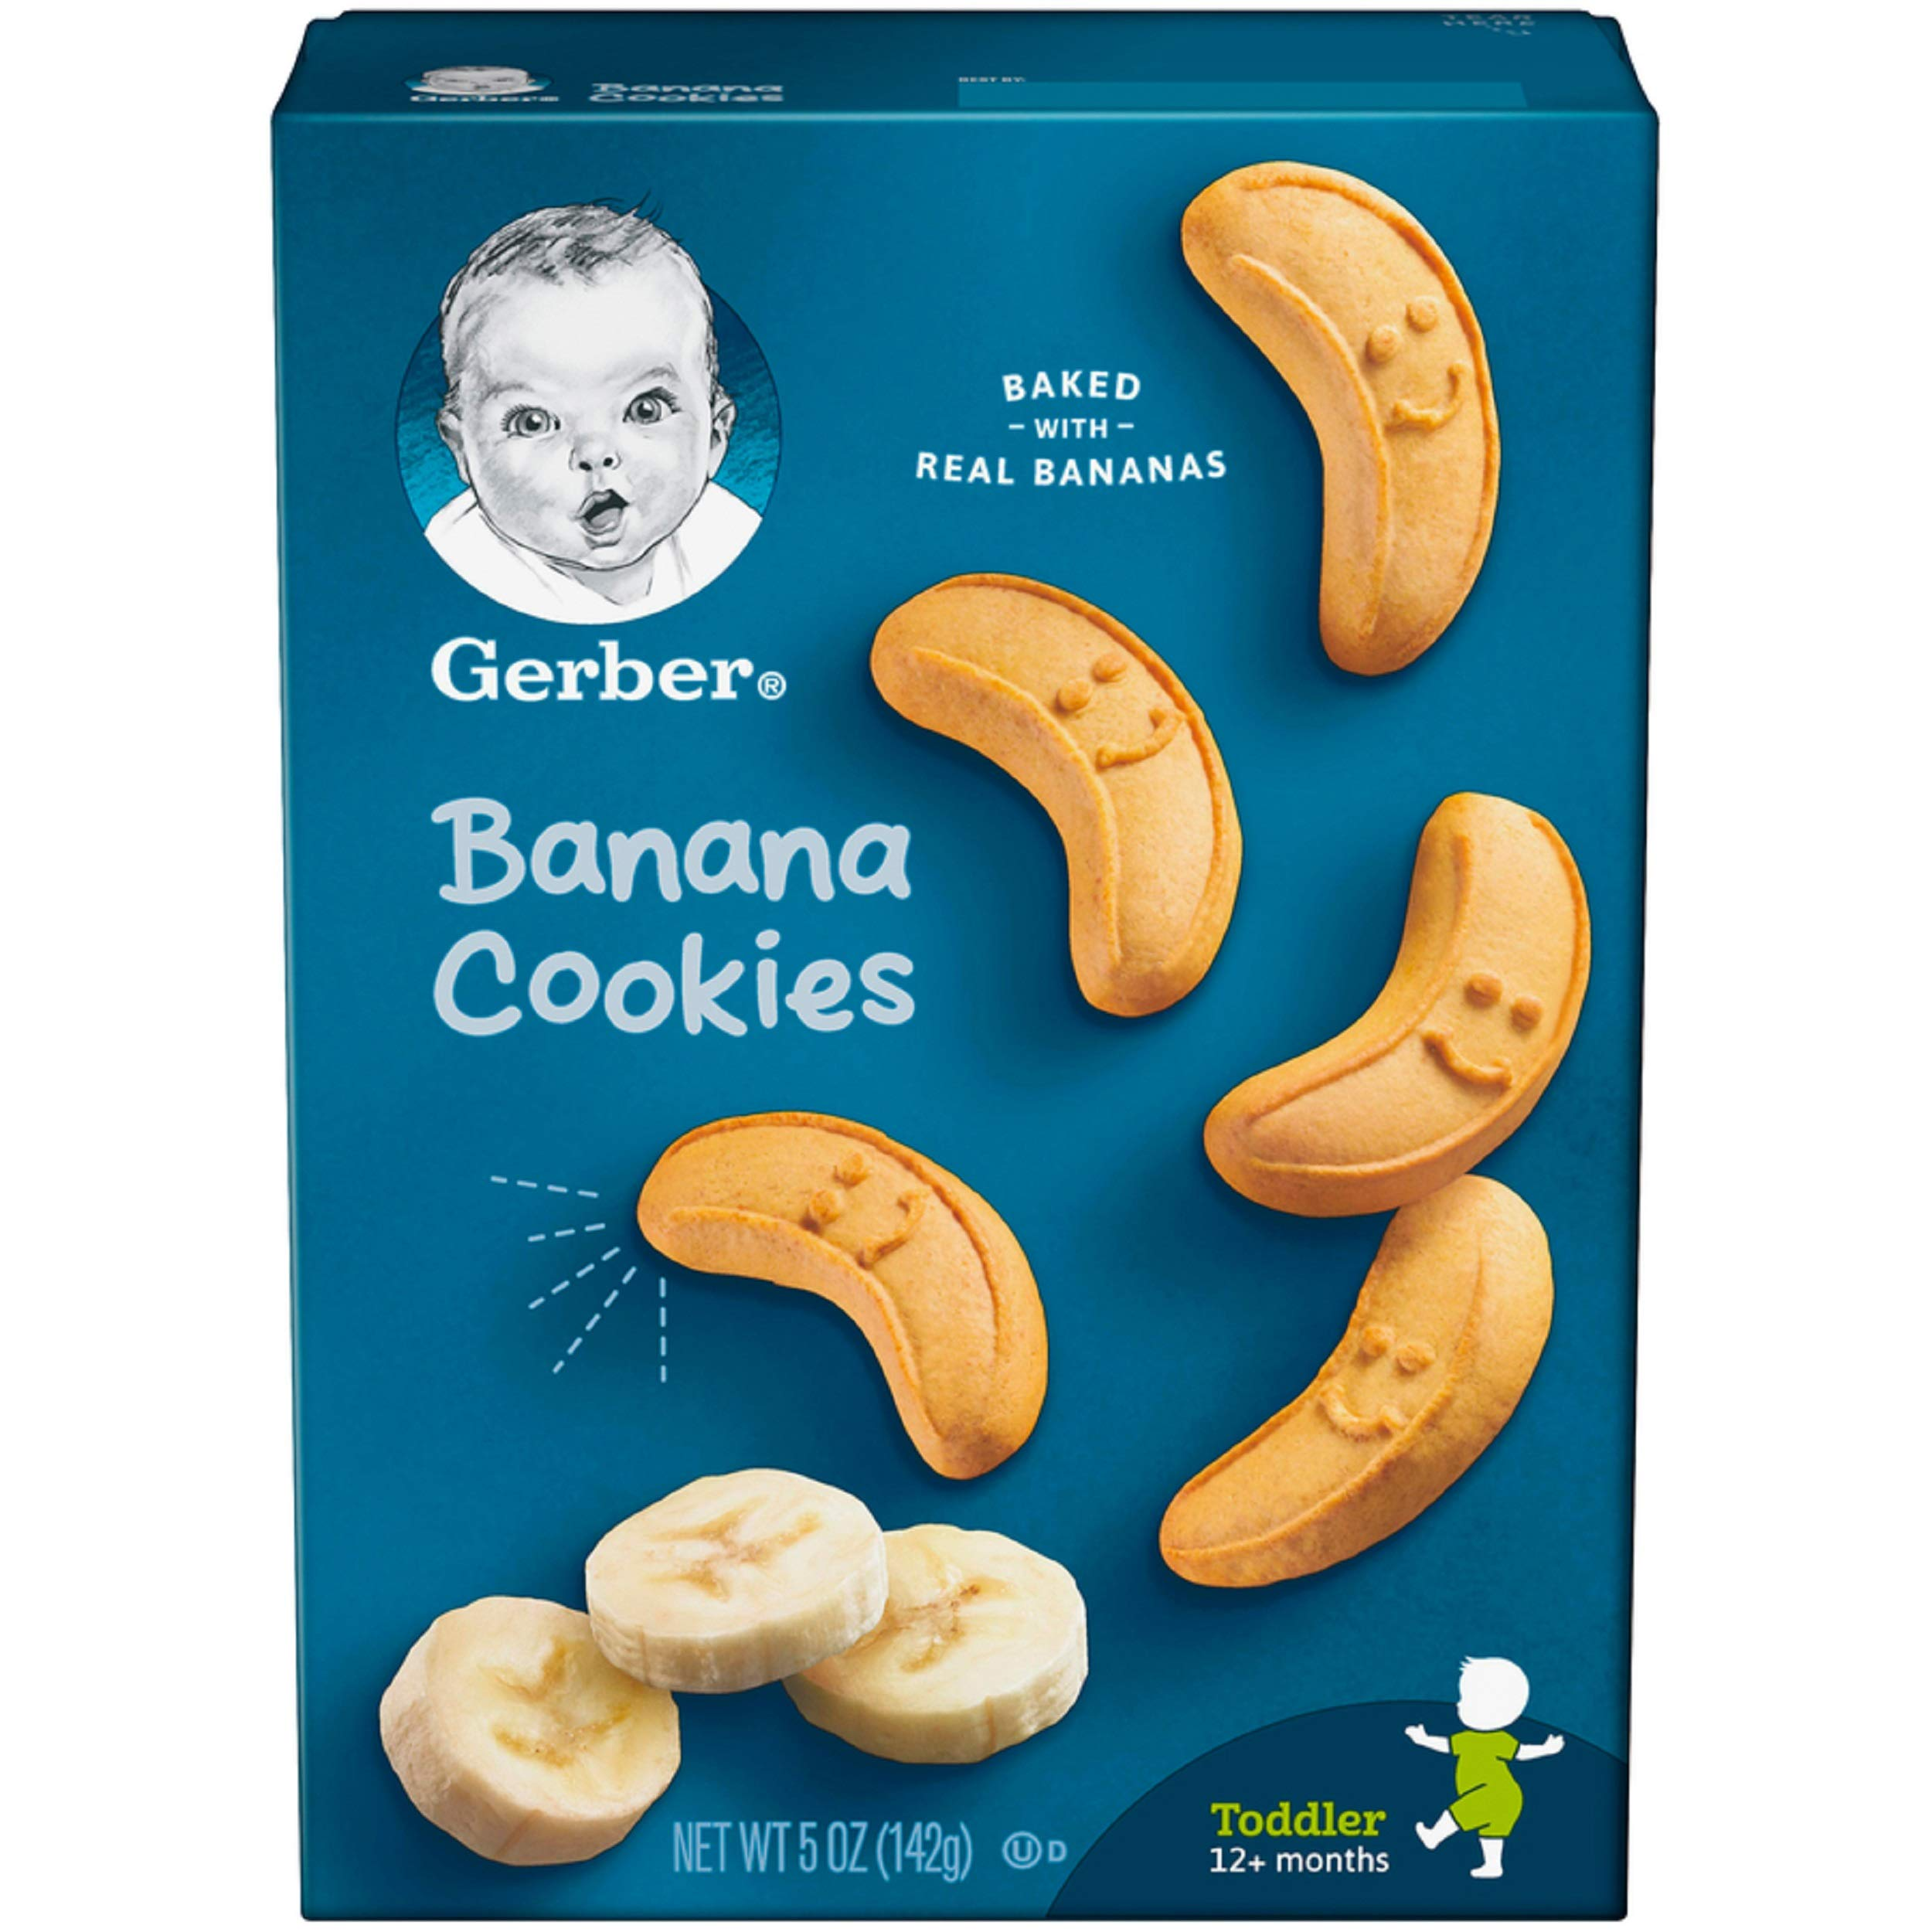 Gerber Graduates Cookies, Banana Cookies Boxes, 5 Ounce (Pack of 12) by GERBER